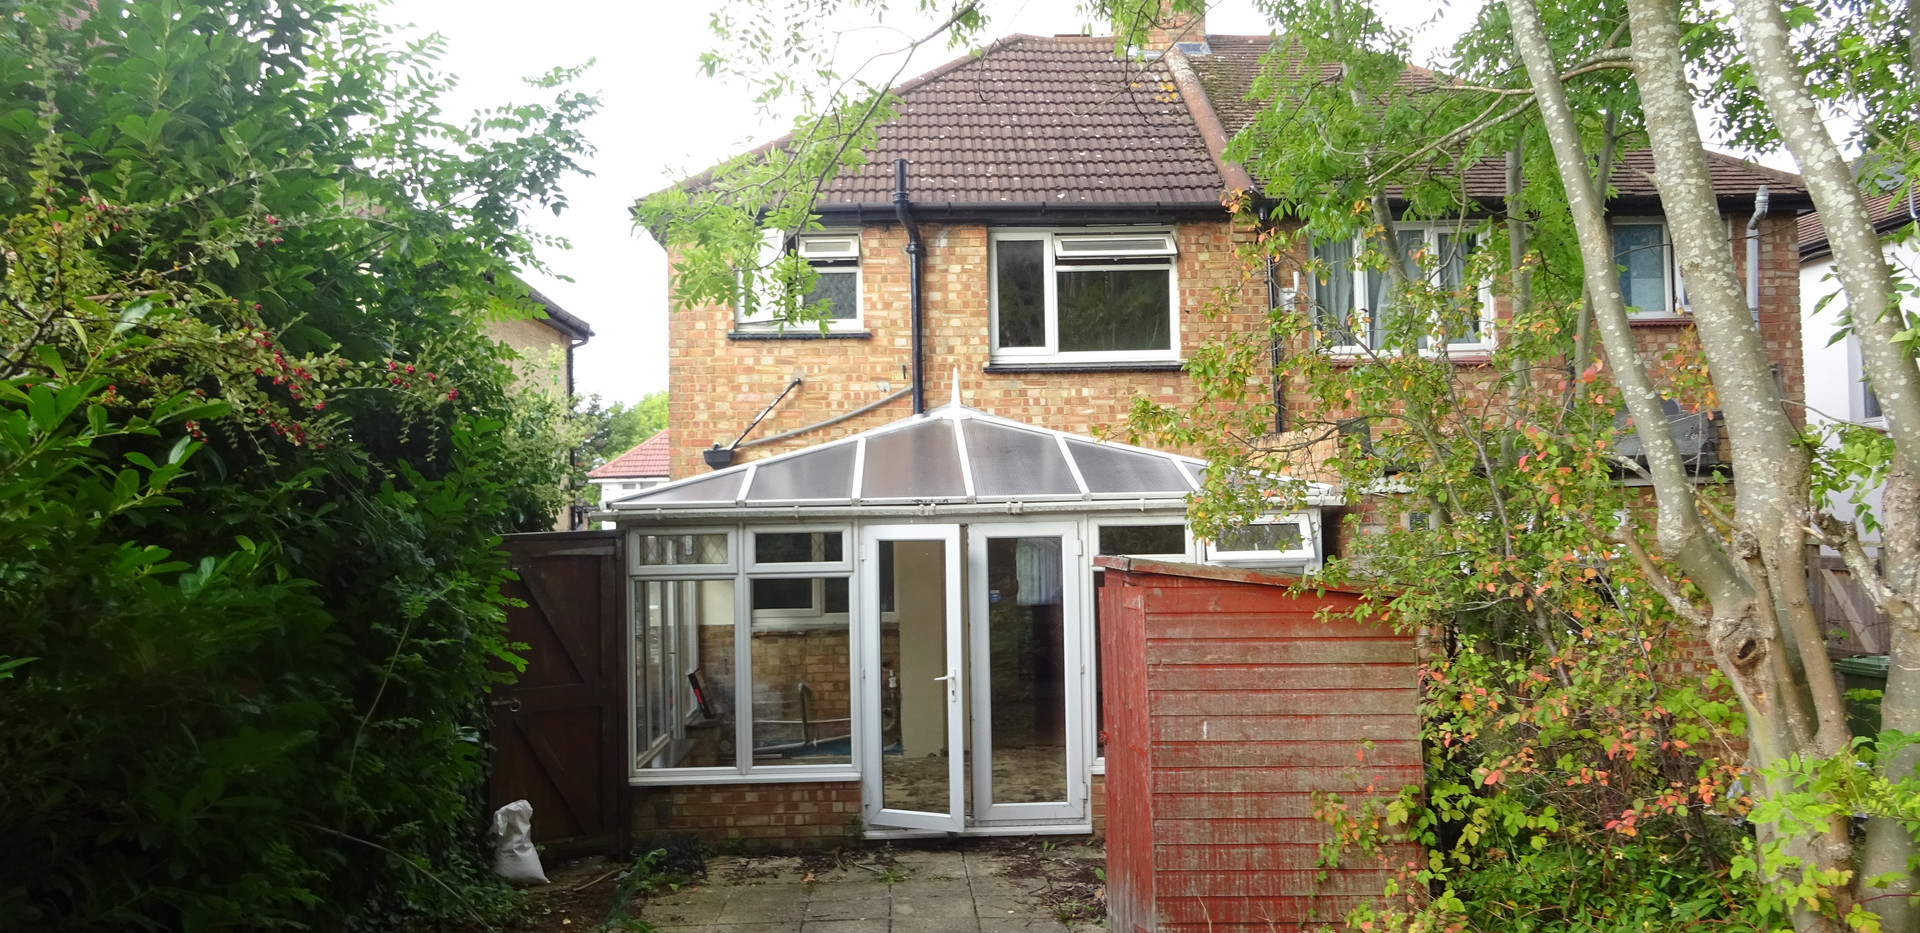 Existing Conservatory (Outside)